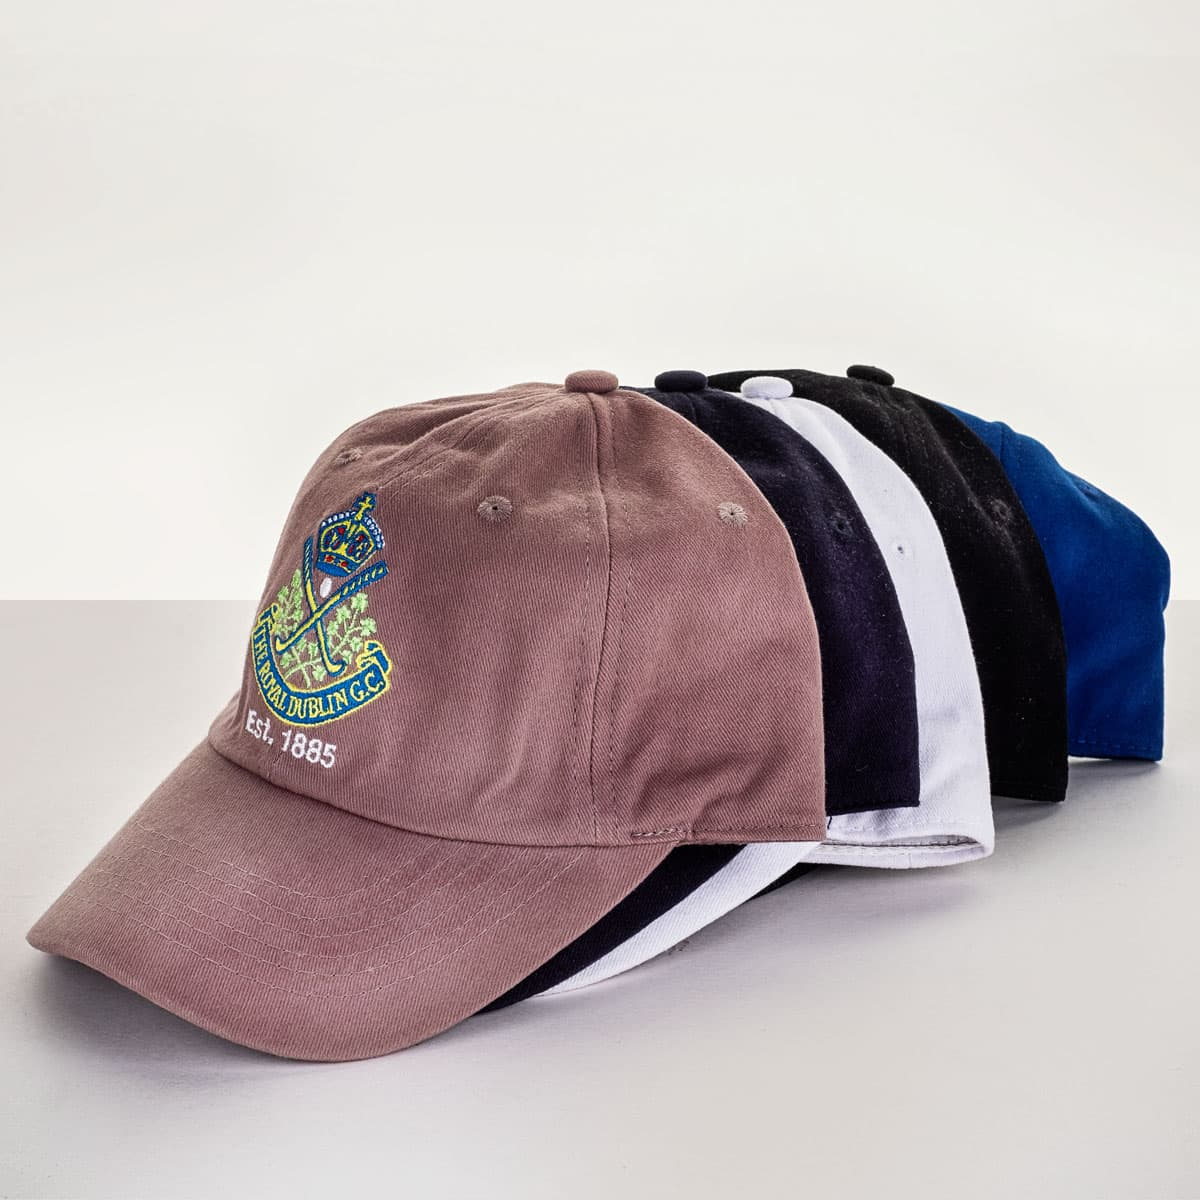 PRG baseball hats in five colours €24.95 or 2 for €40.